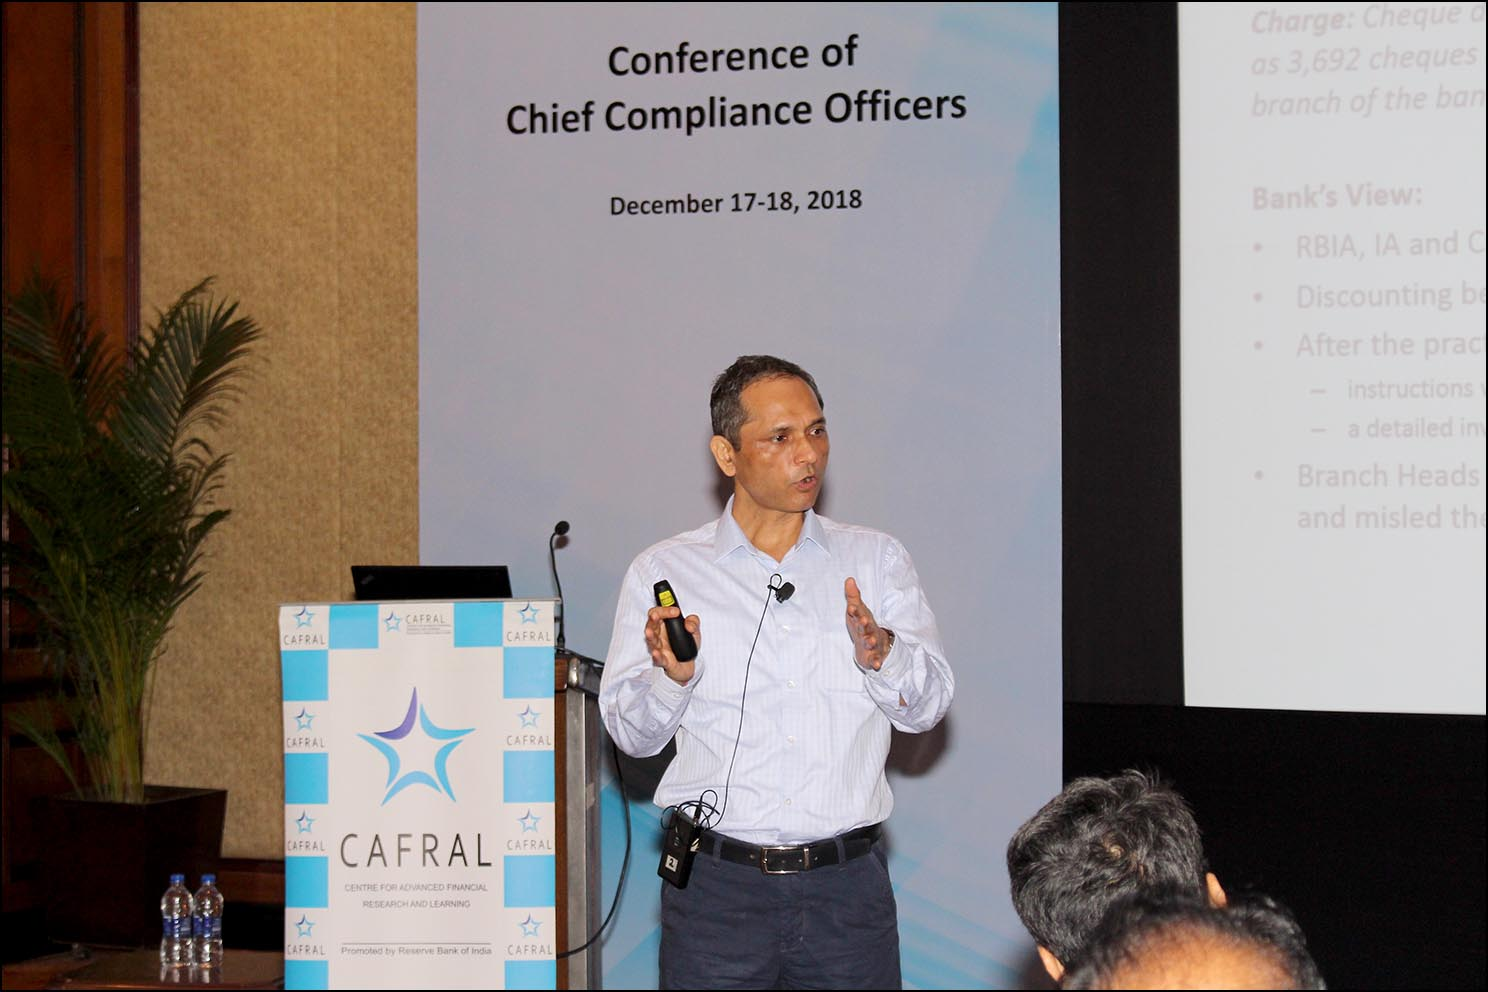 Anil Kumar Sharma, CGM, Enforcement Department, RBI